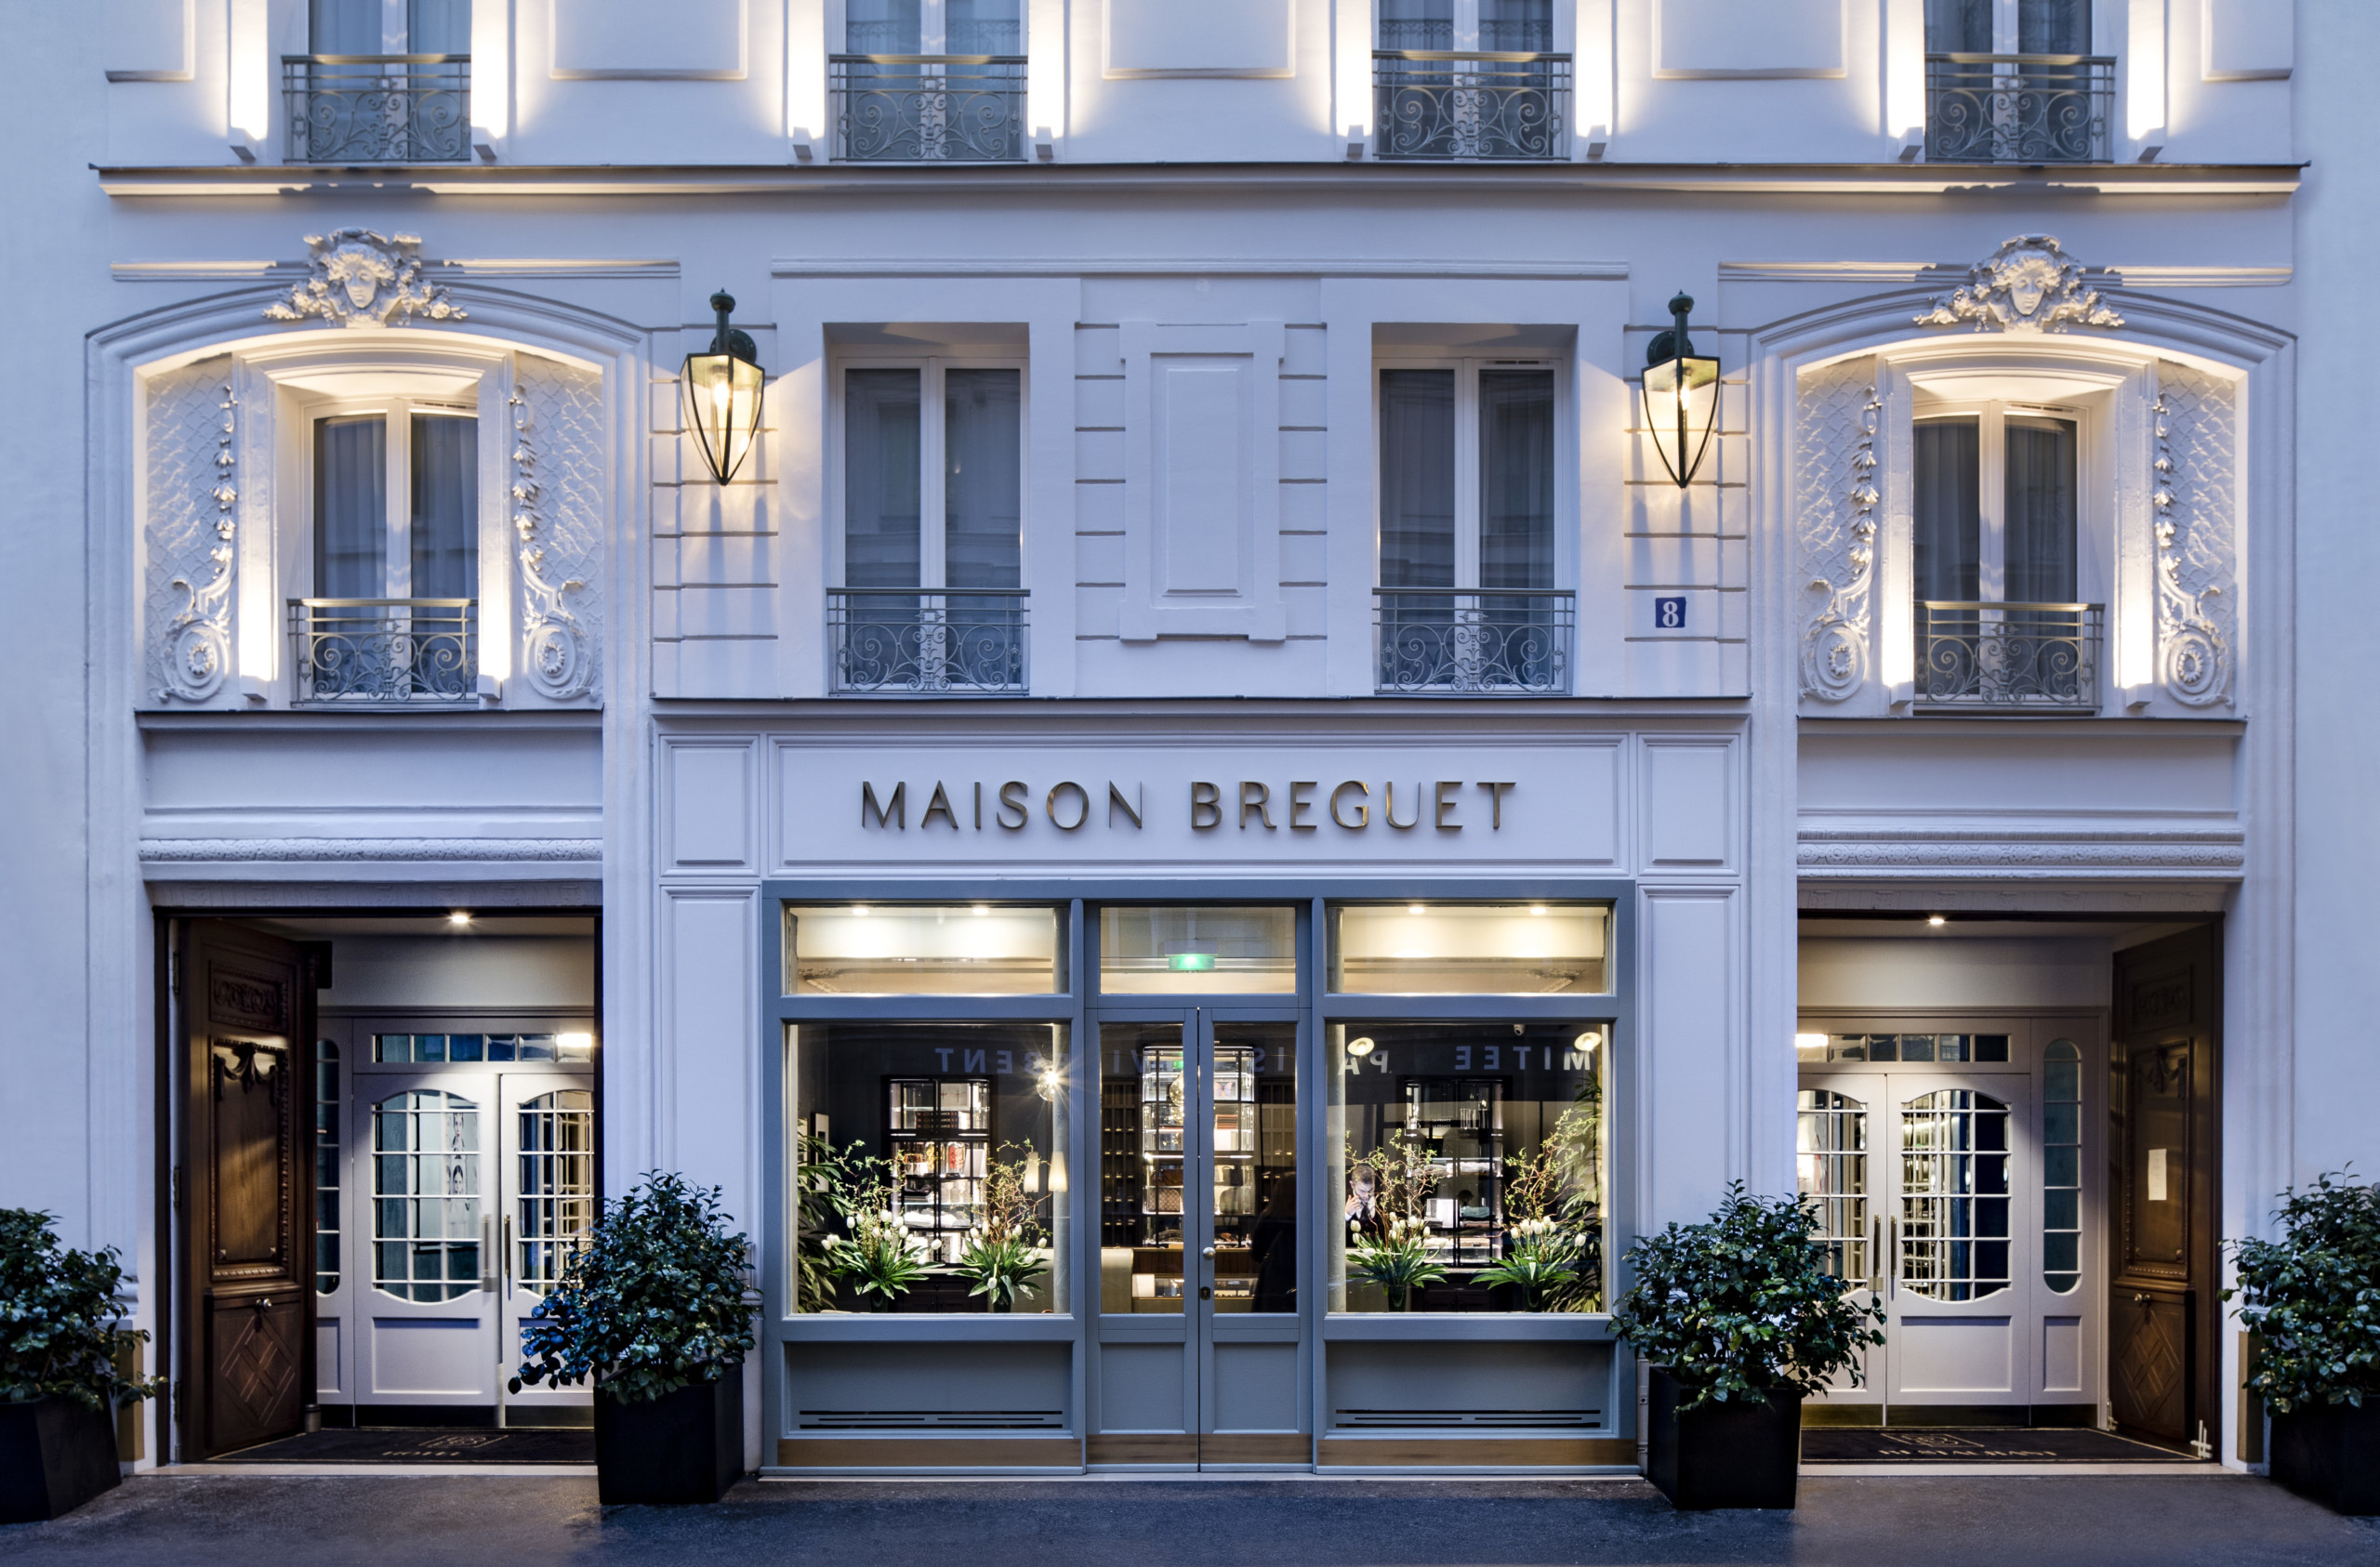 outside of maison. breguet hotel in paris